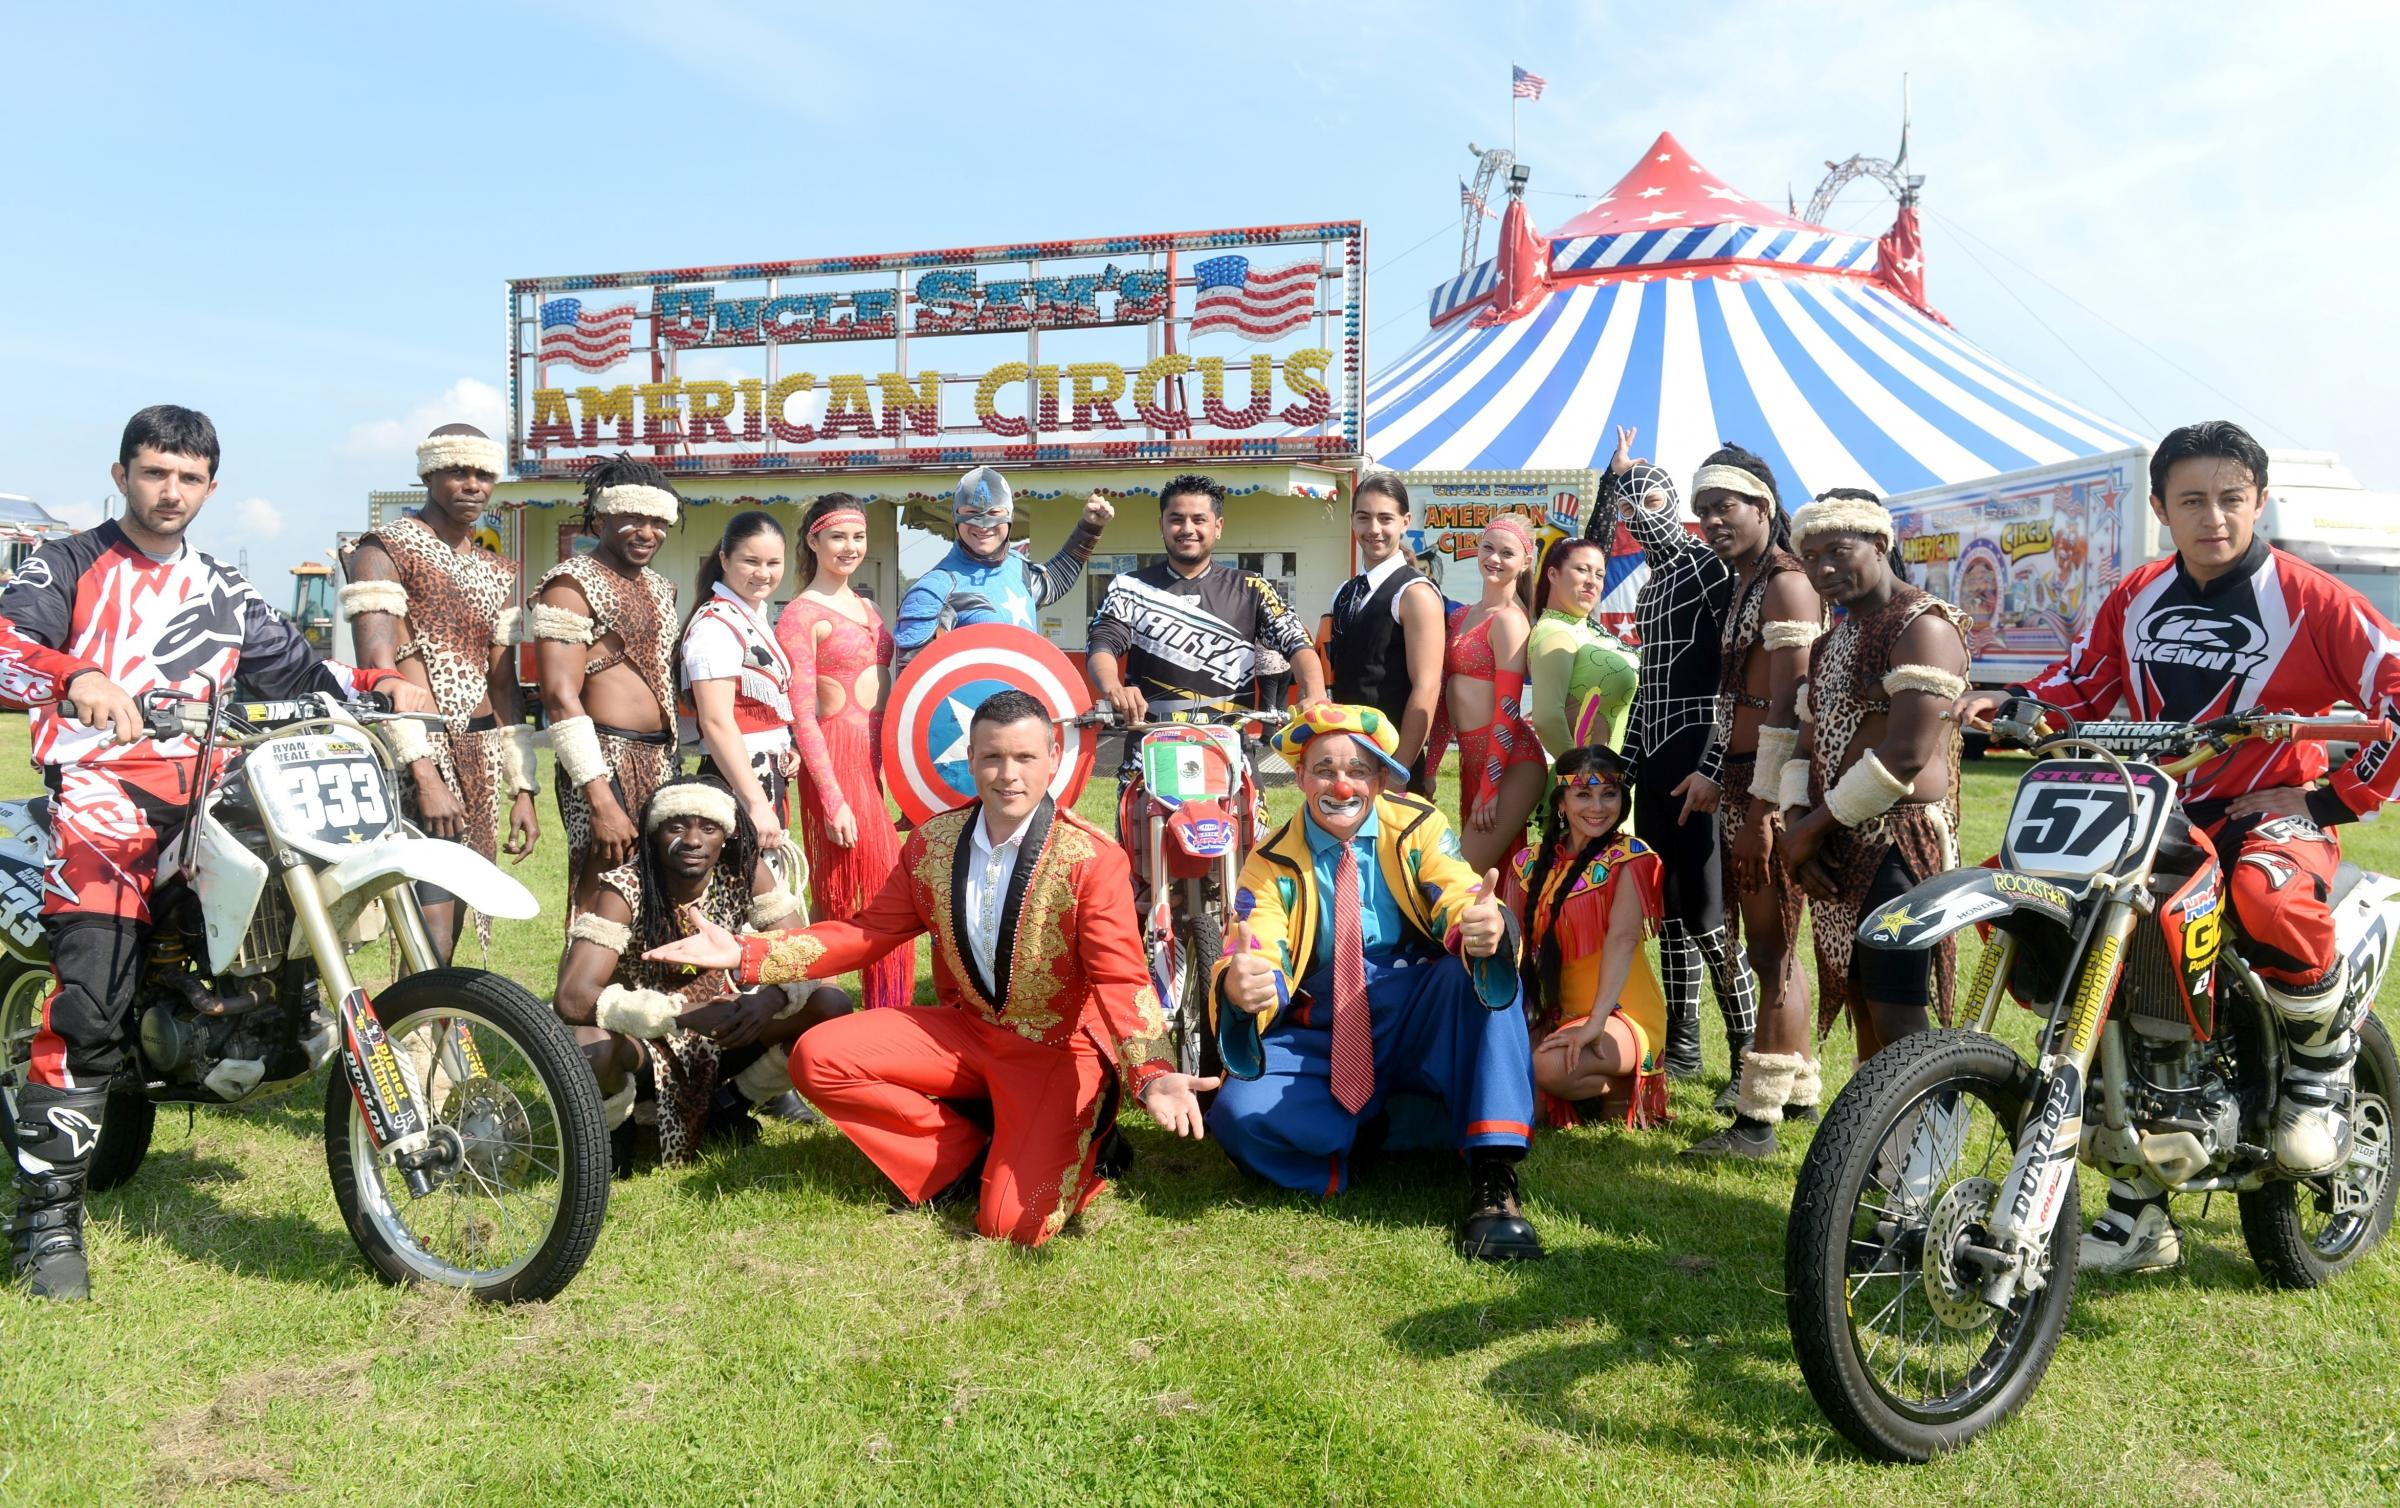 American Circus comes to Blackwood